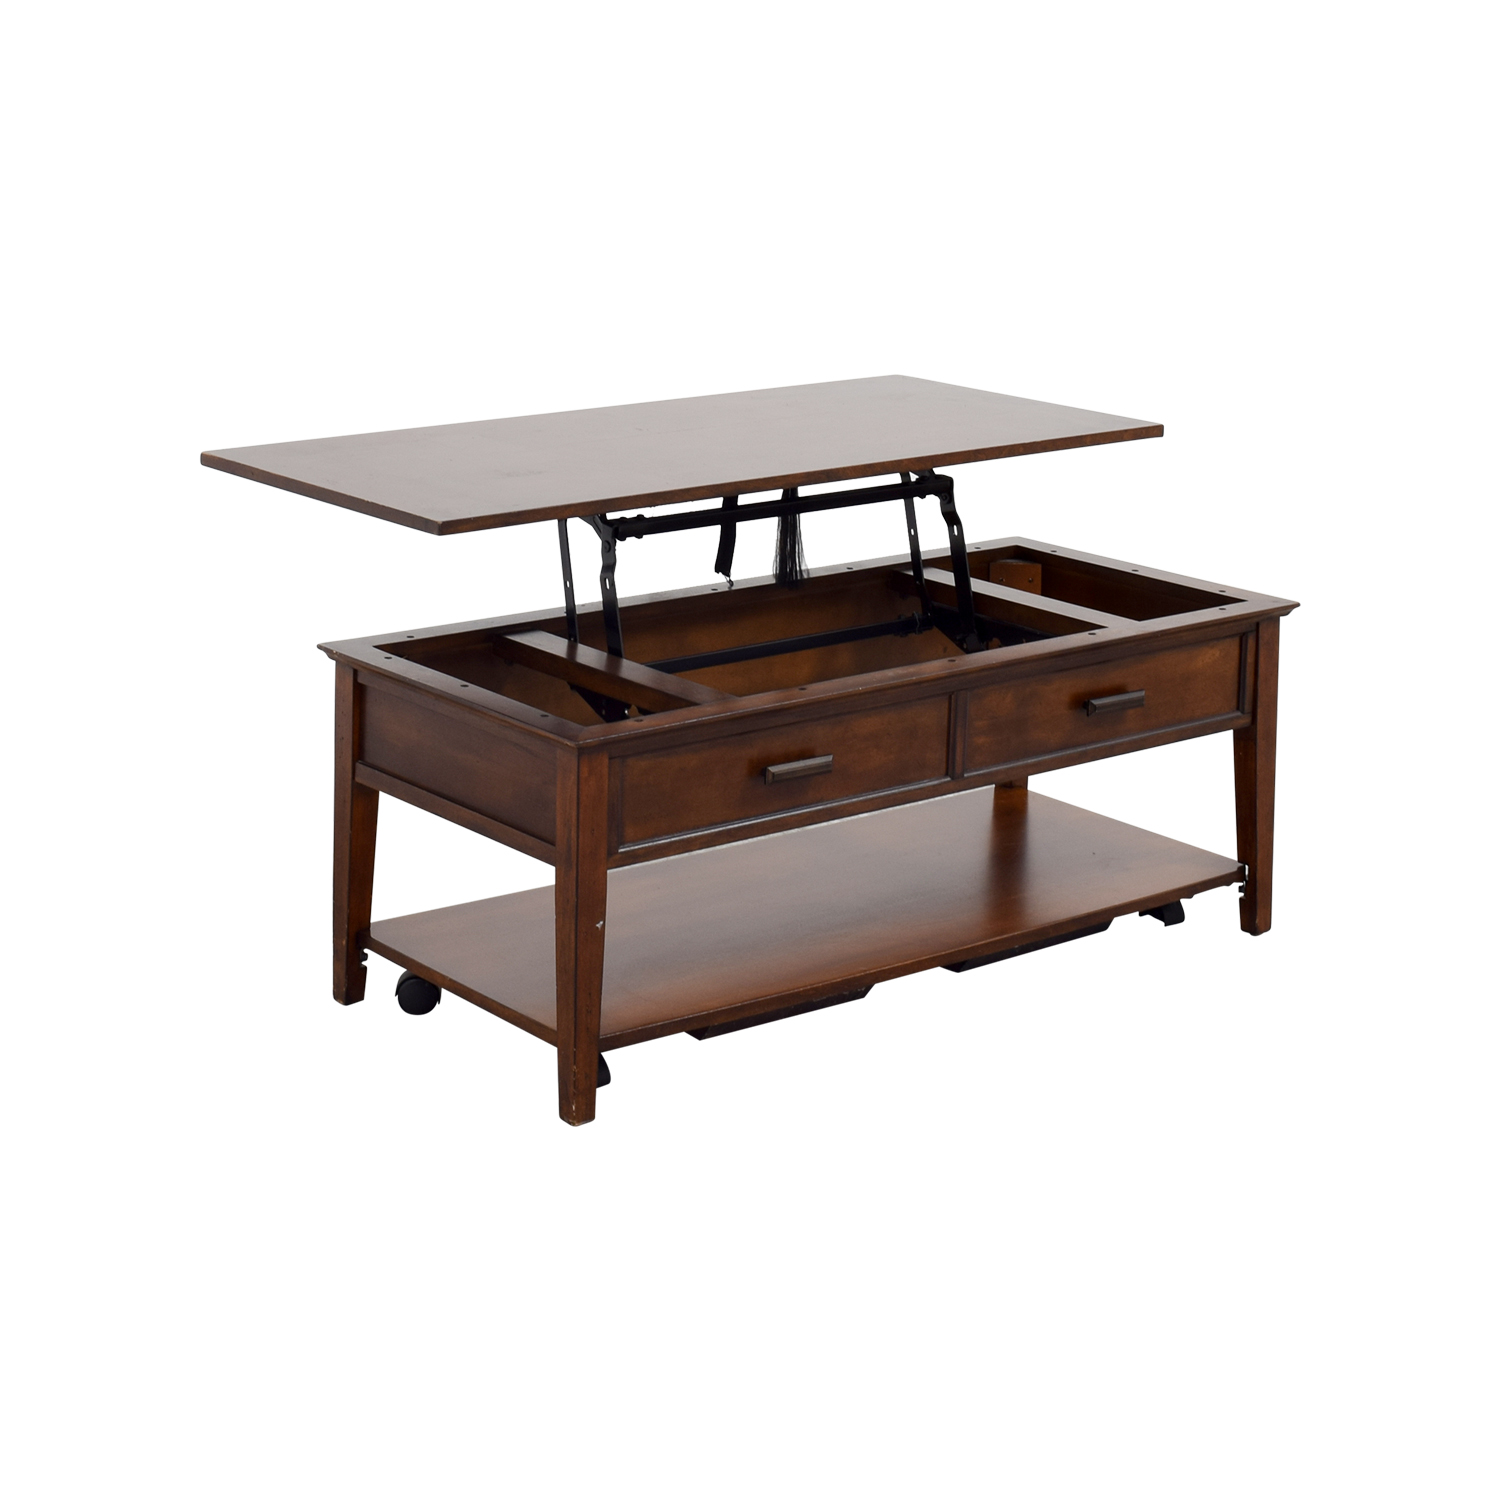 Buy Used Tables Buy Used Office Furniture Miami Florida Breakpr